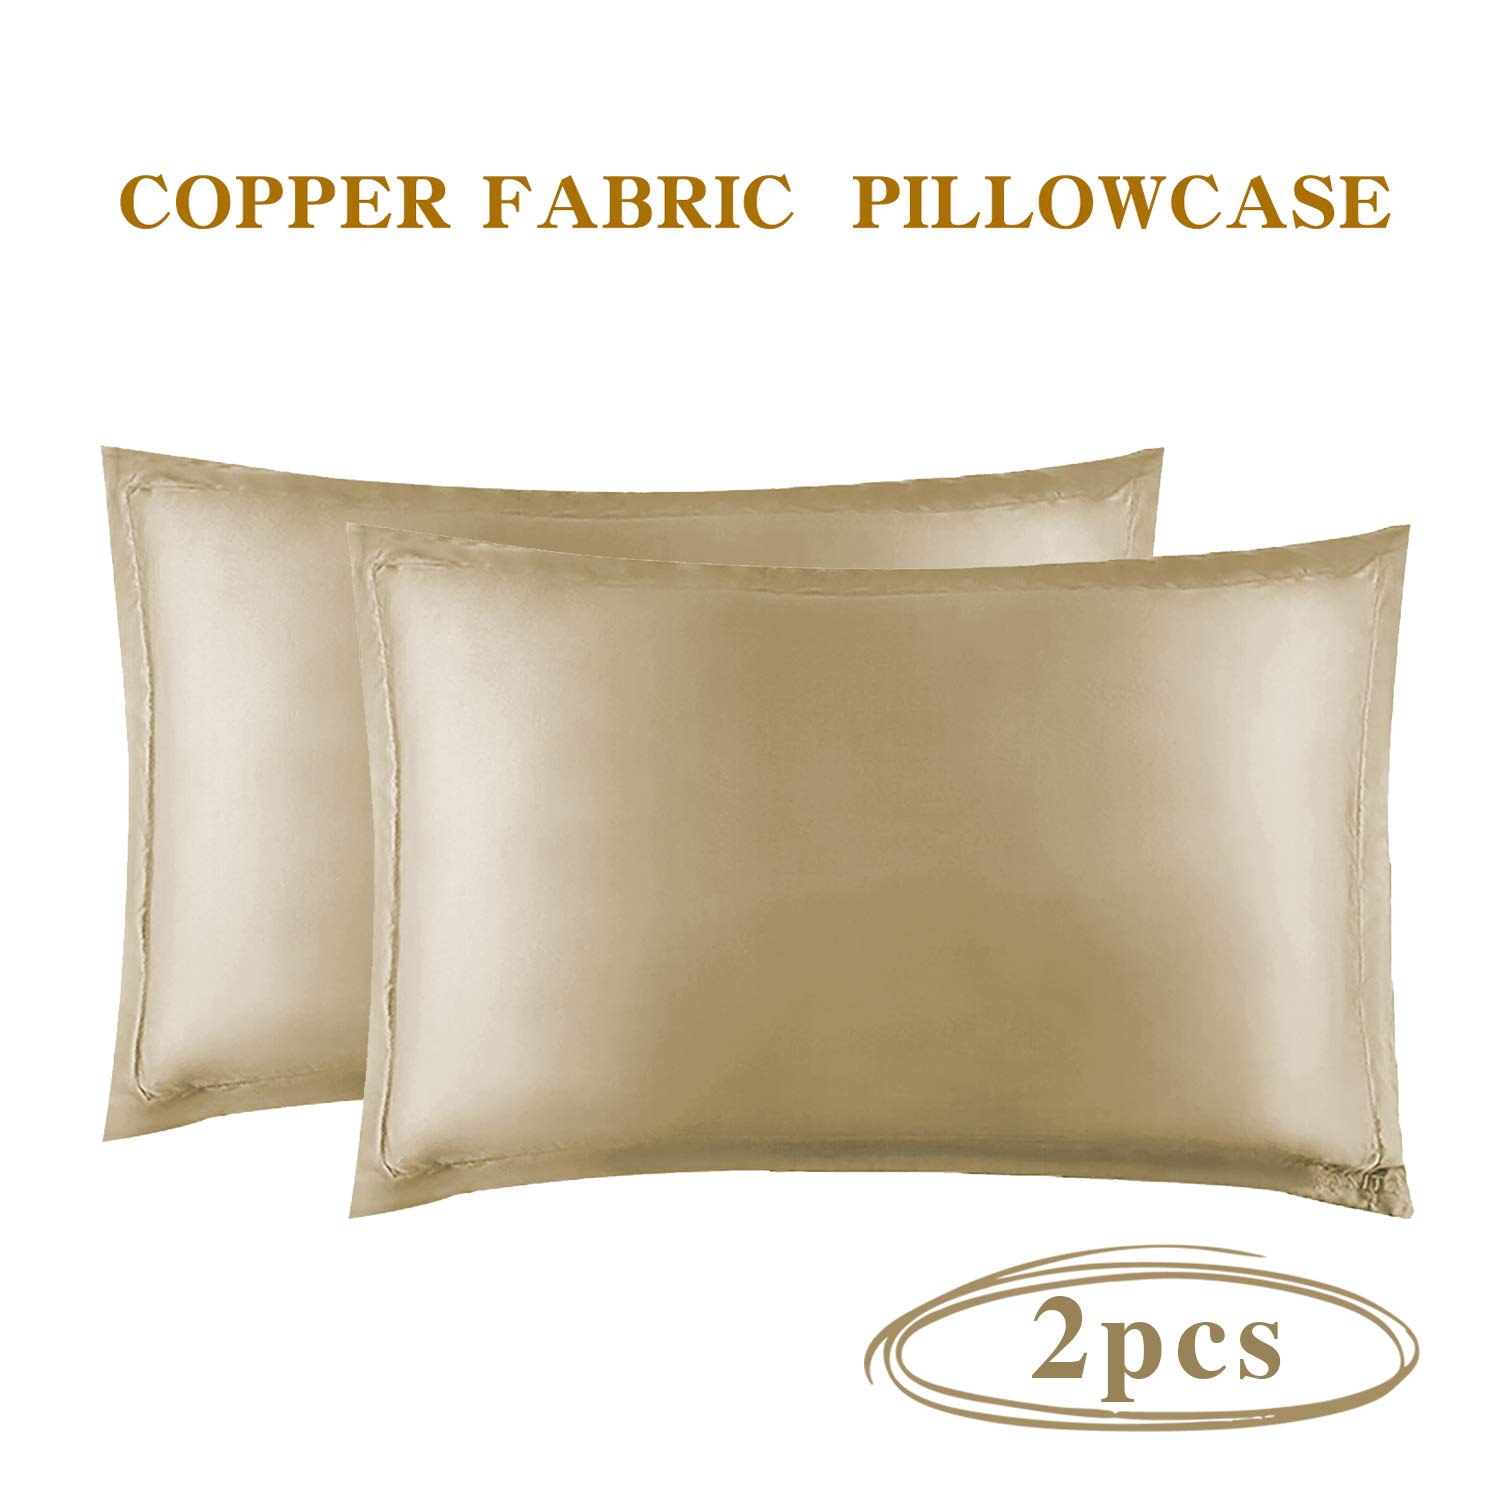 Anti Wrinkl Anti-Aging Pillowcase with Copper Oxide Fiber for Skin Rejuvenating